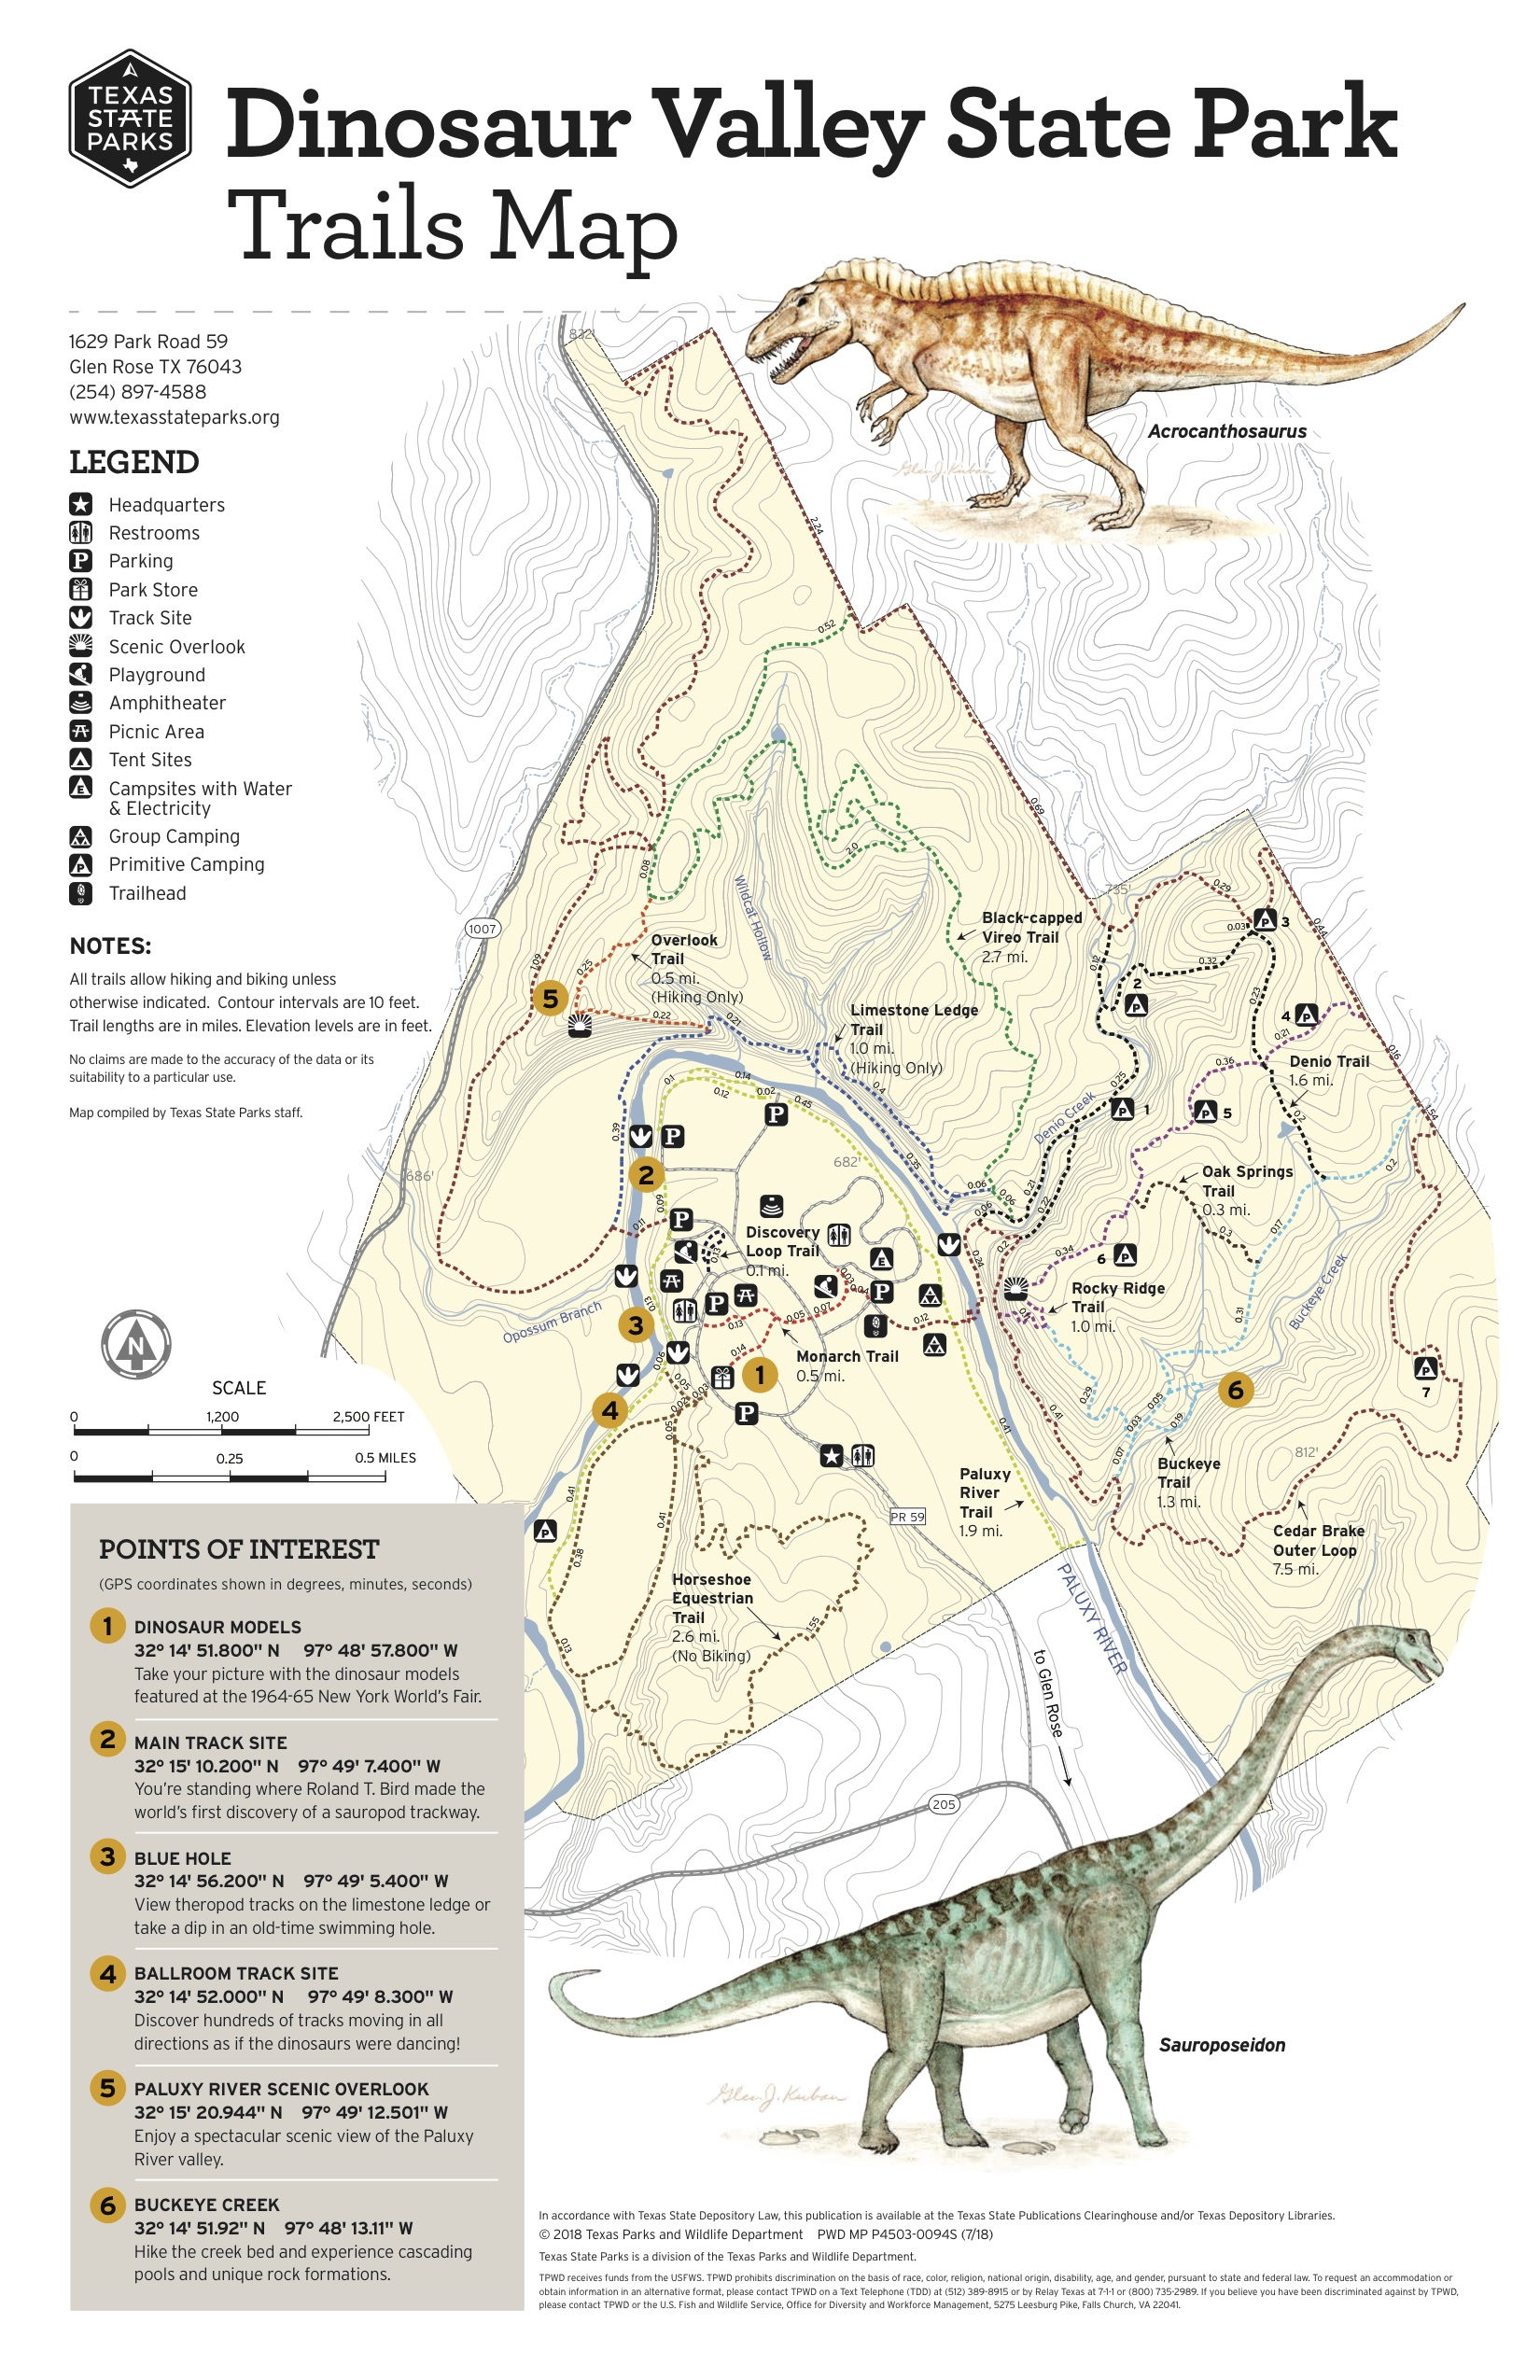 Dinosaur Valley Trails Map on Outside Dallas